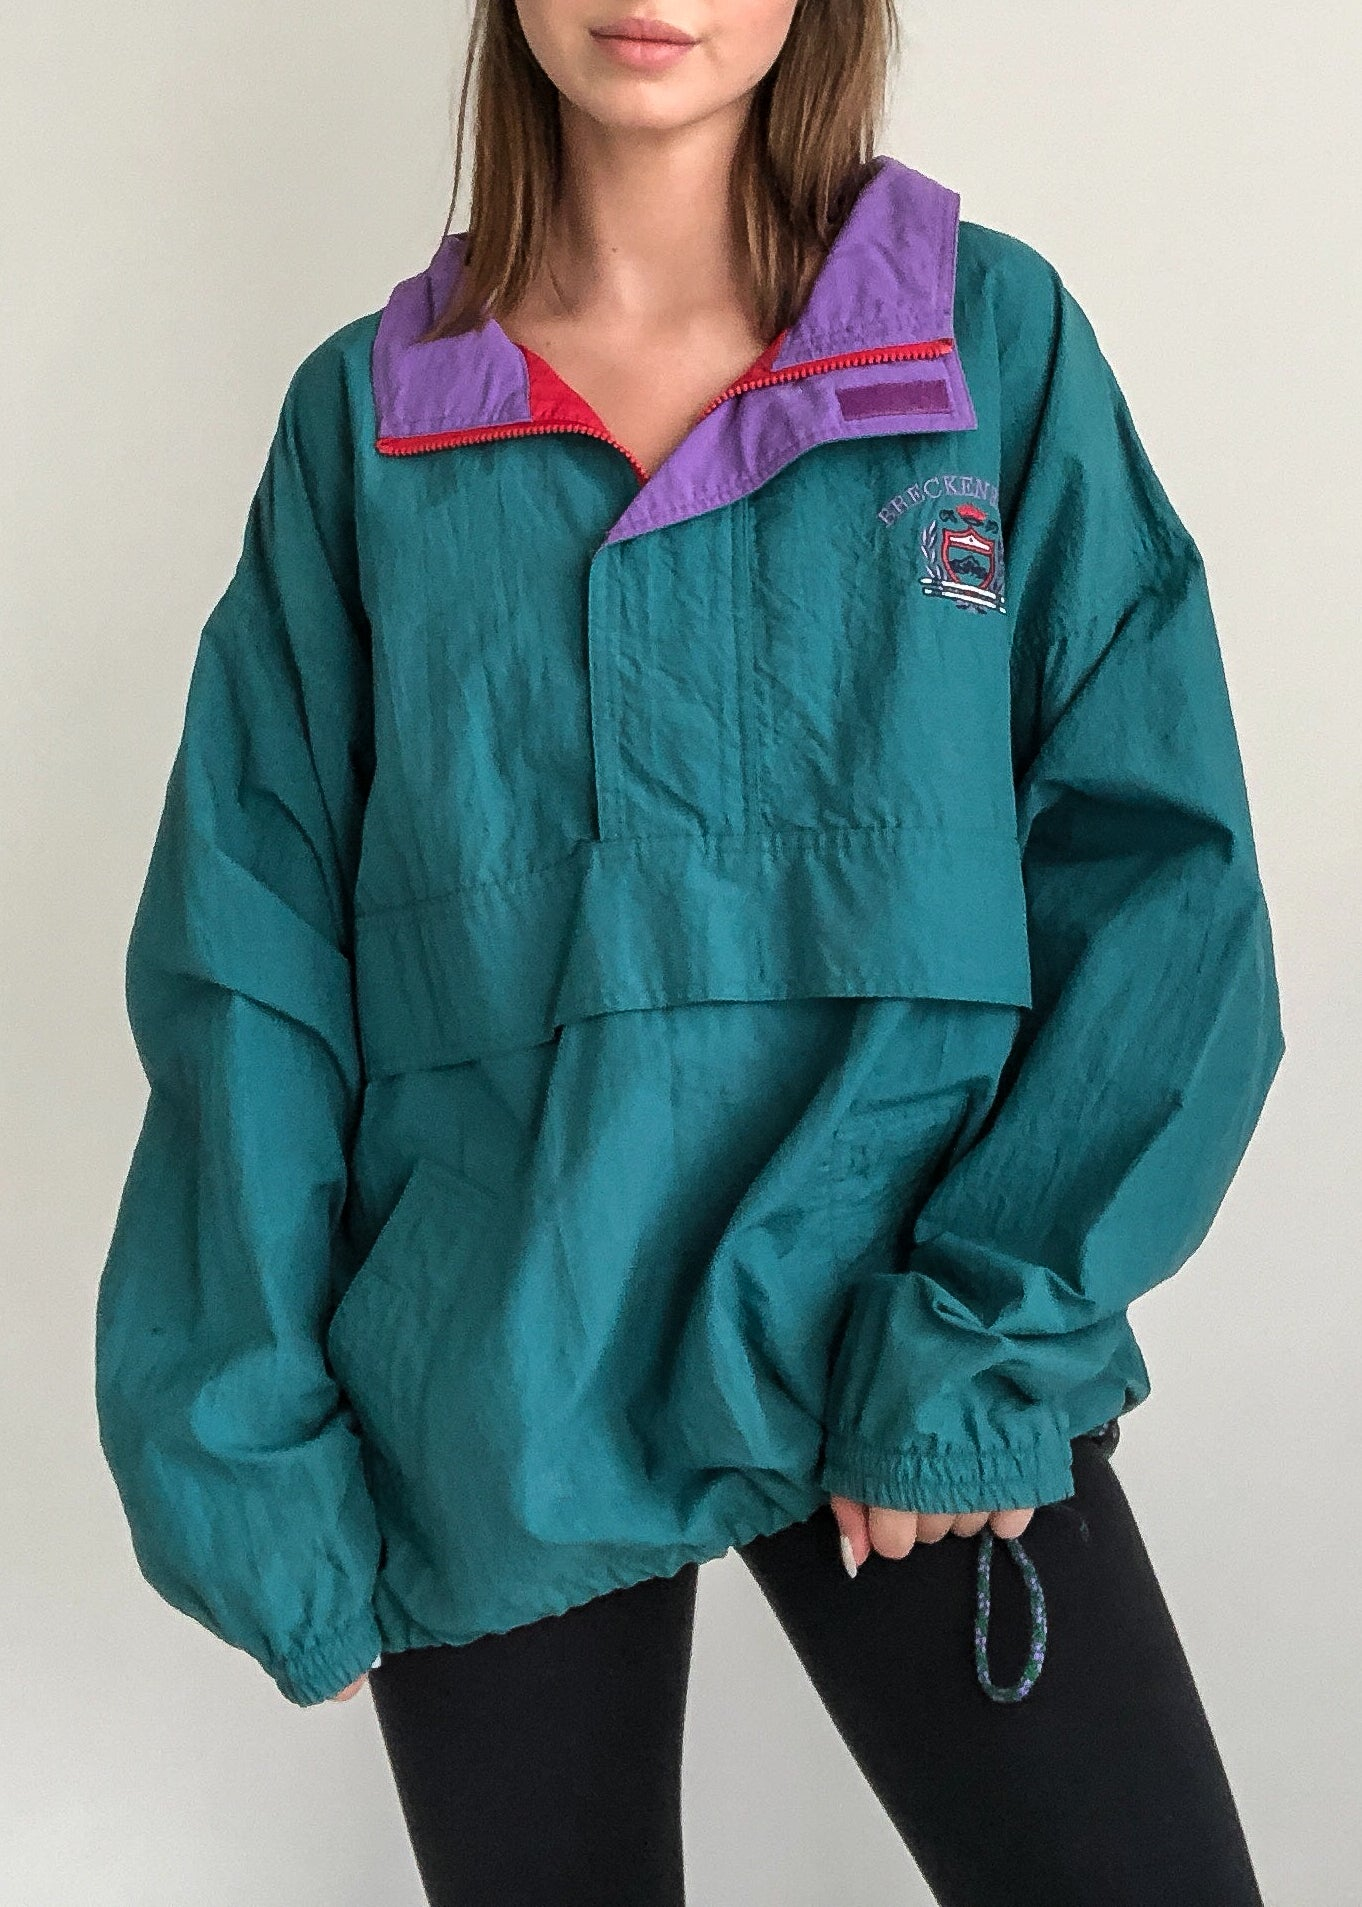 80s Action Windbreaker